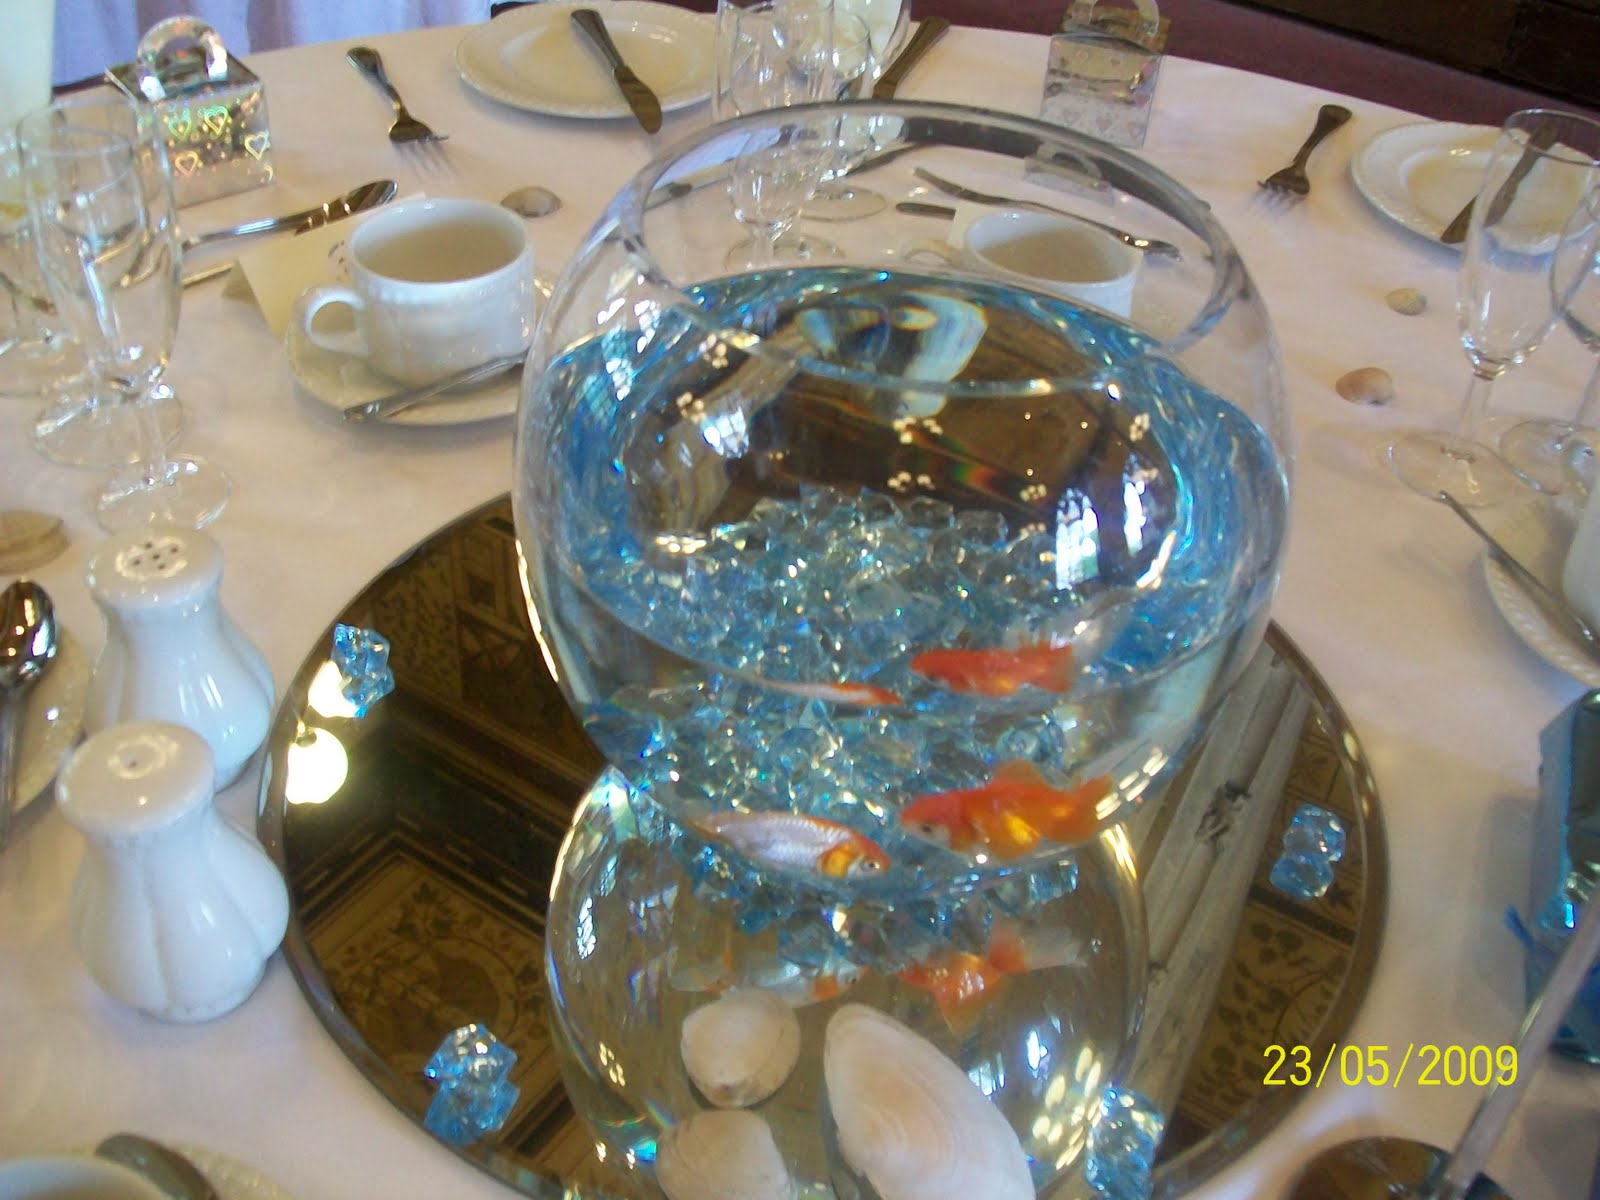 Dana markos events event design and floral styling crazy for Fish bowl centerpieces ideas